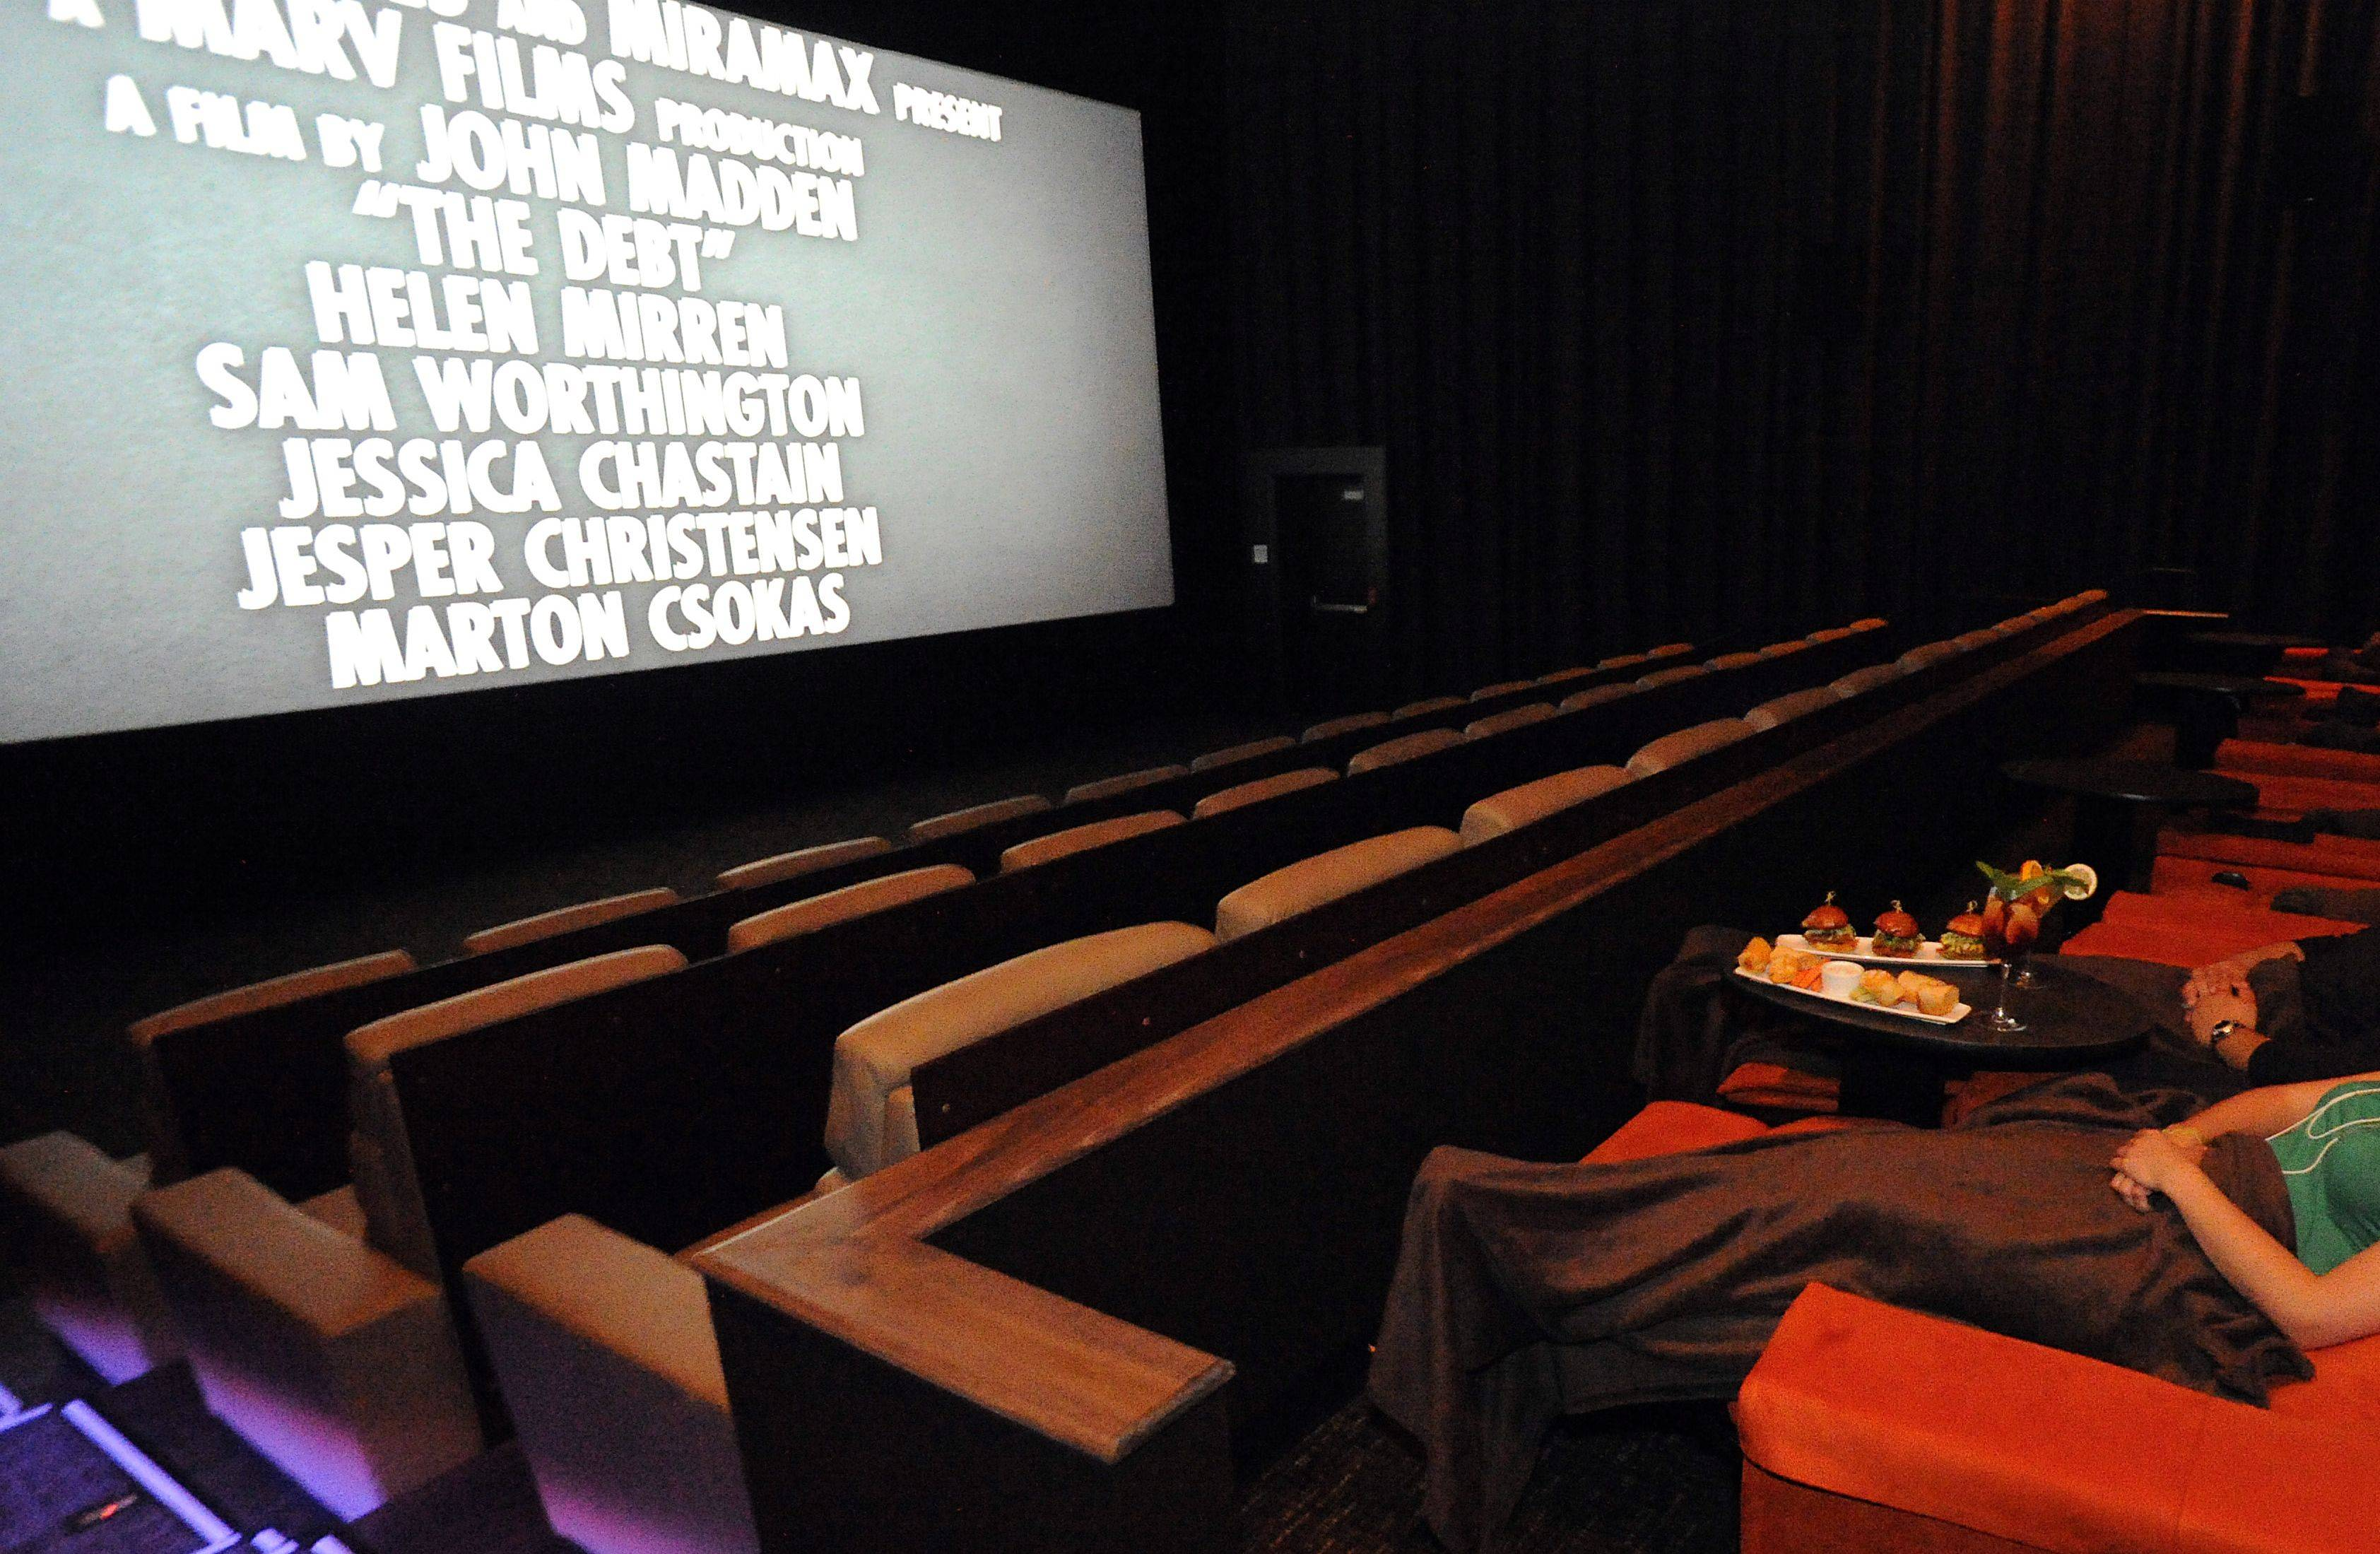 Food from the Salt Sports Bar can be brought into the iPic theater so dinner and a movie is closer than you can imagine.